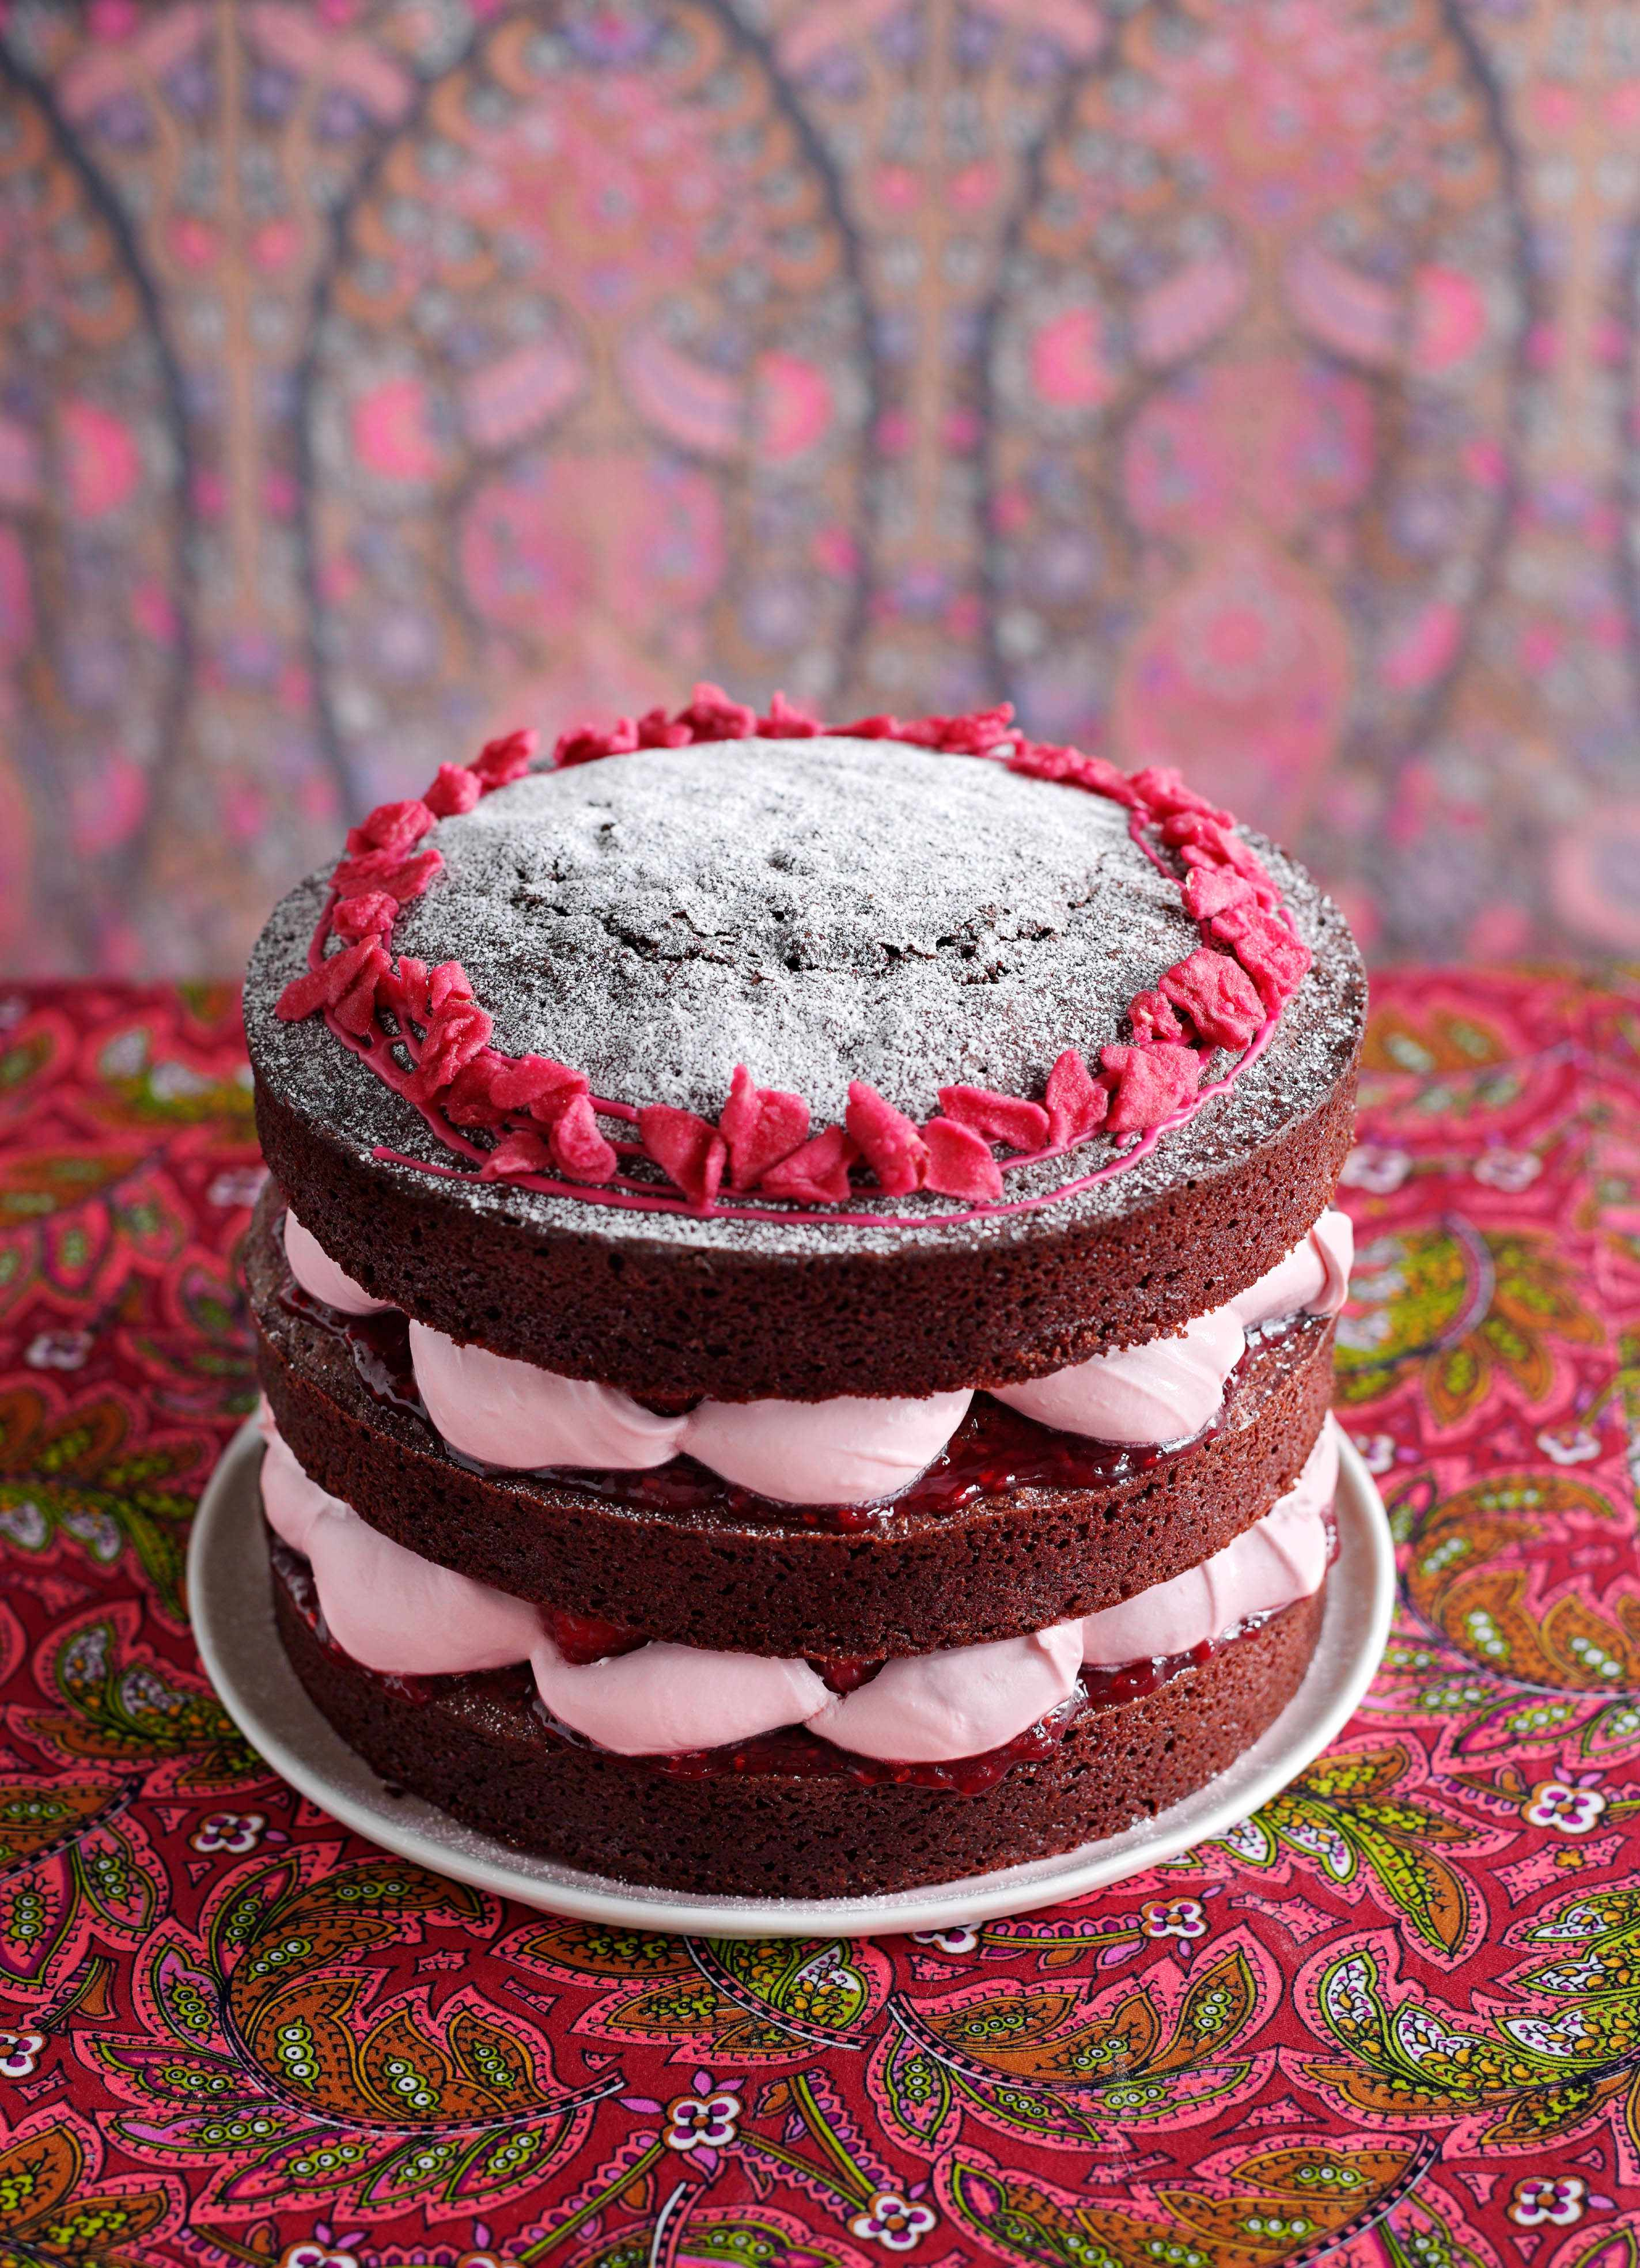 Chocolate Rose Cake with Raspberries